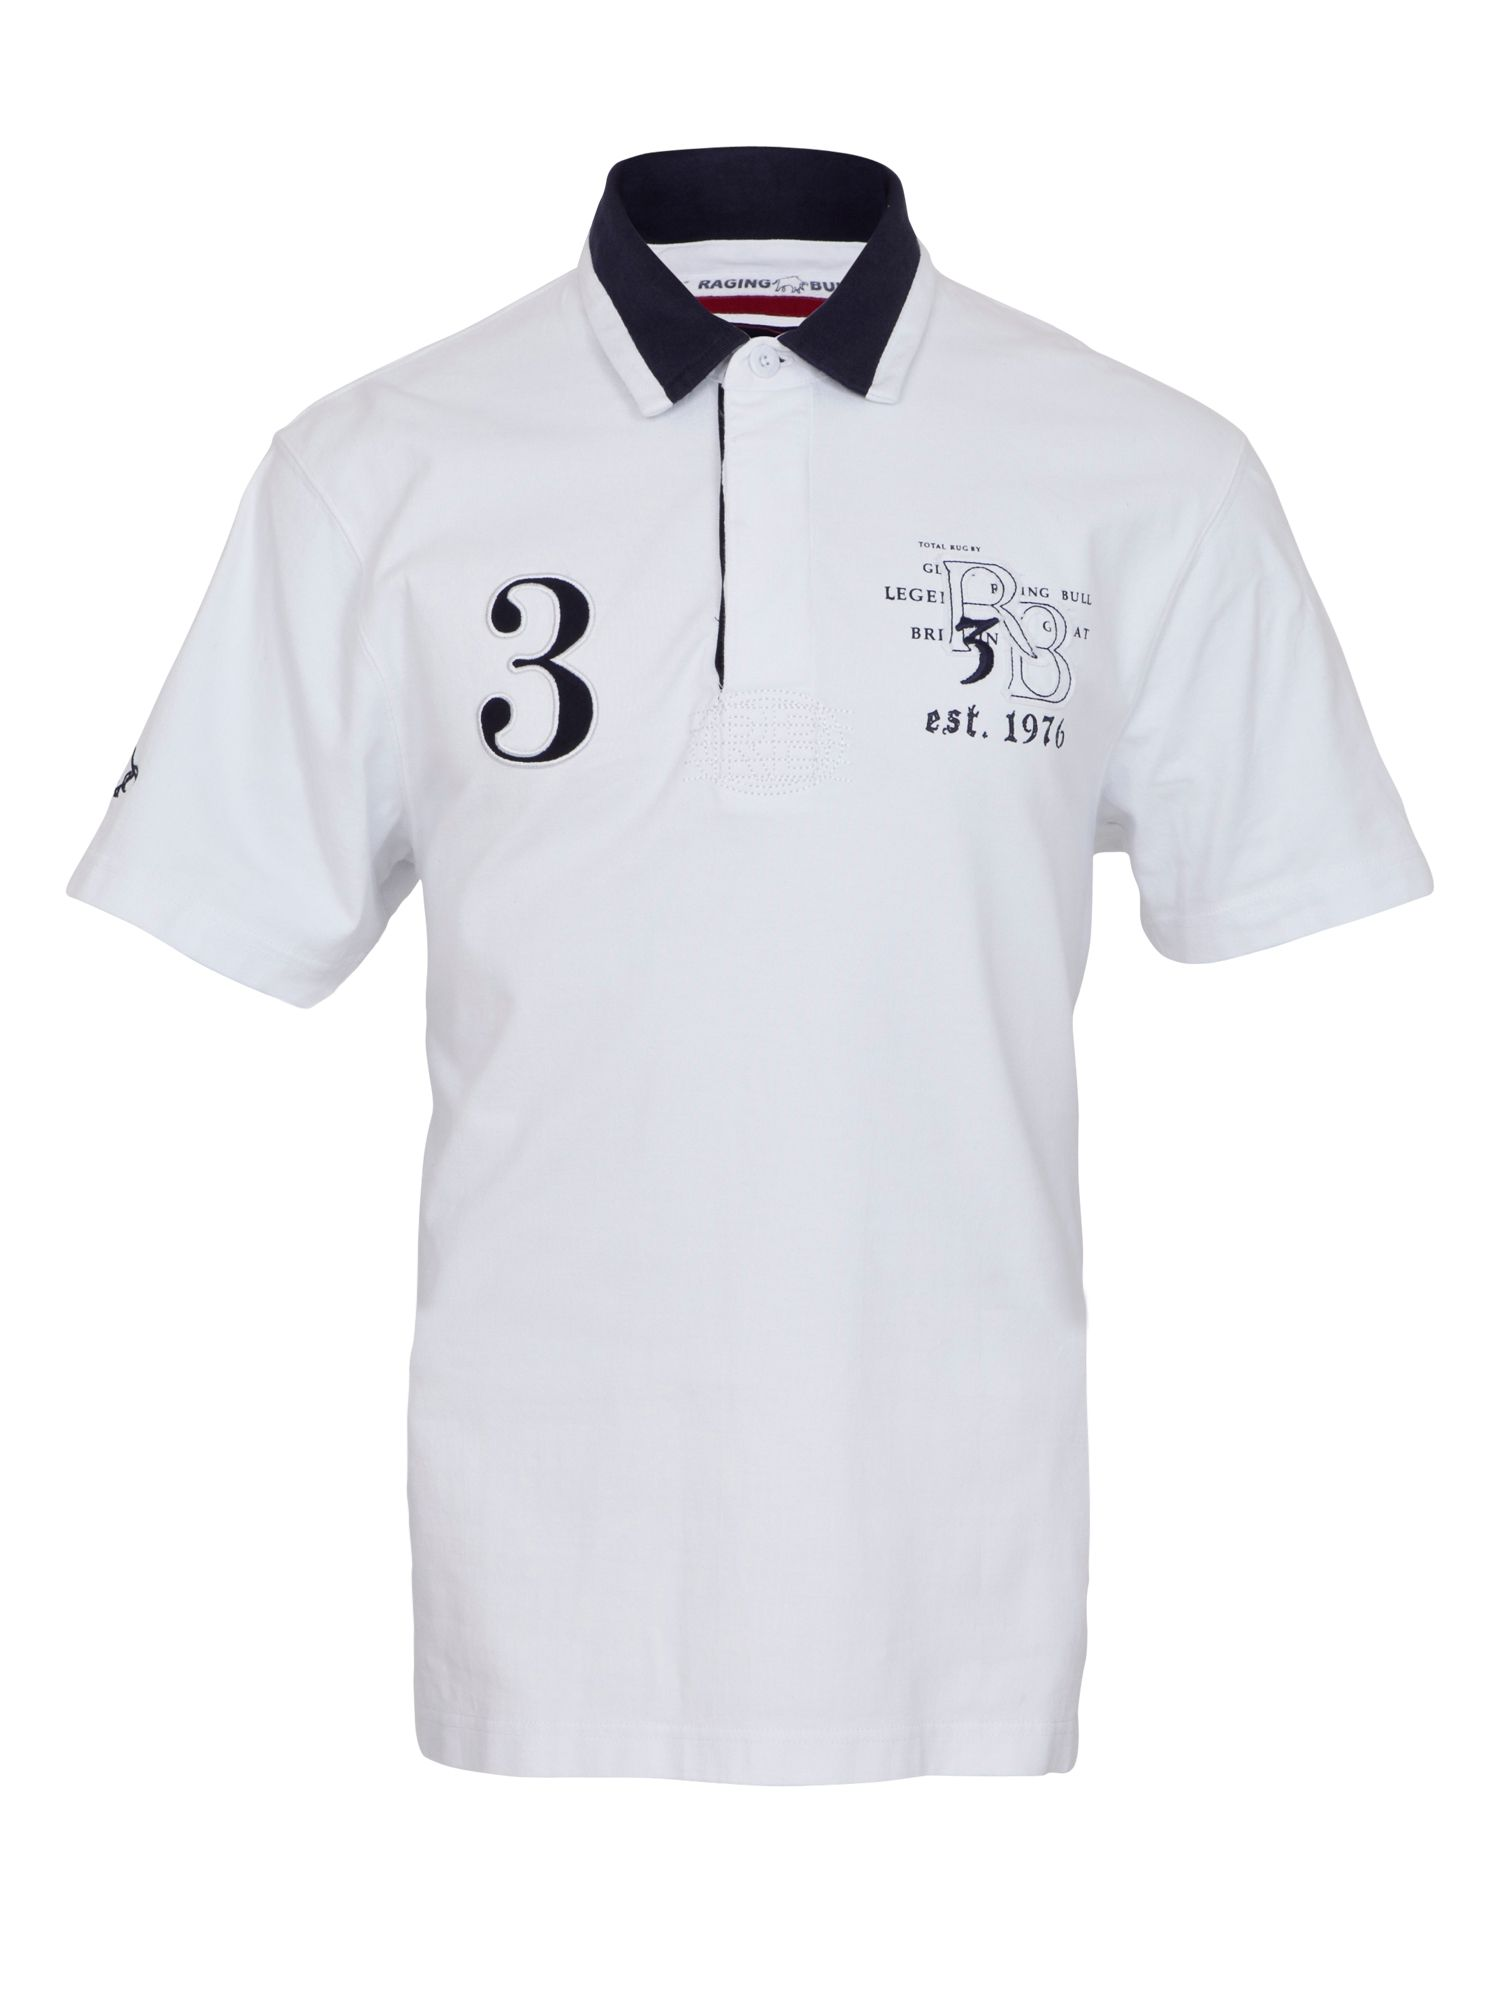 Applique rugby shirt